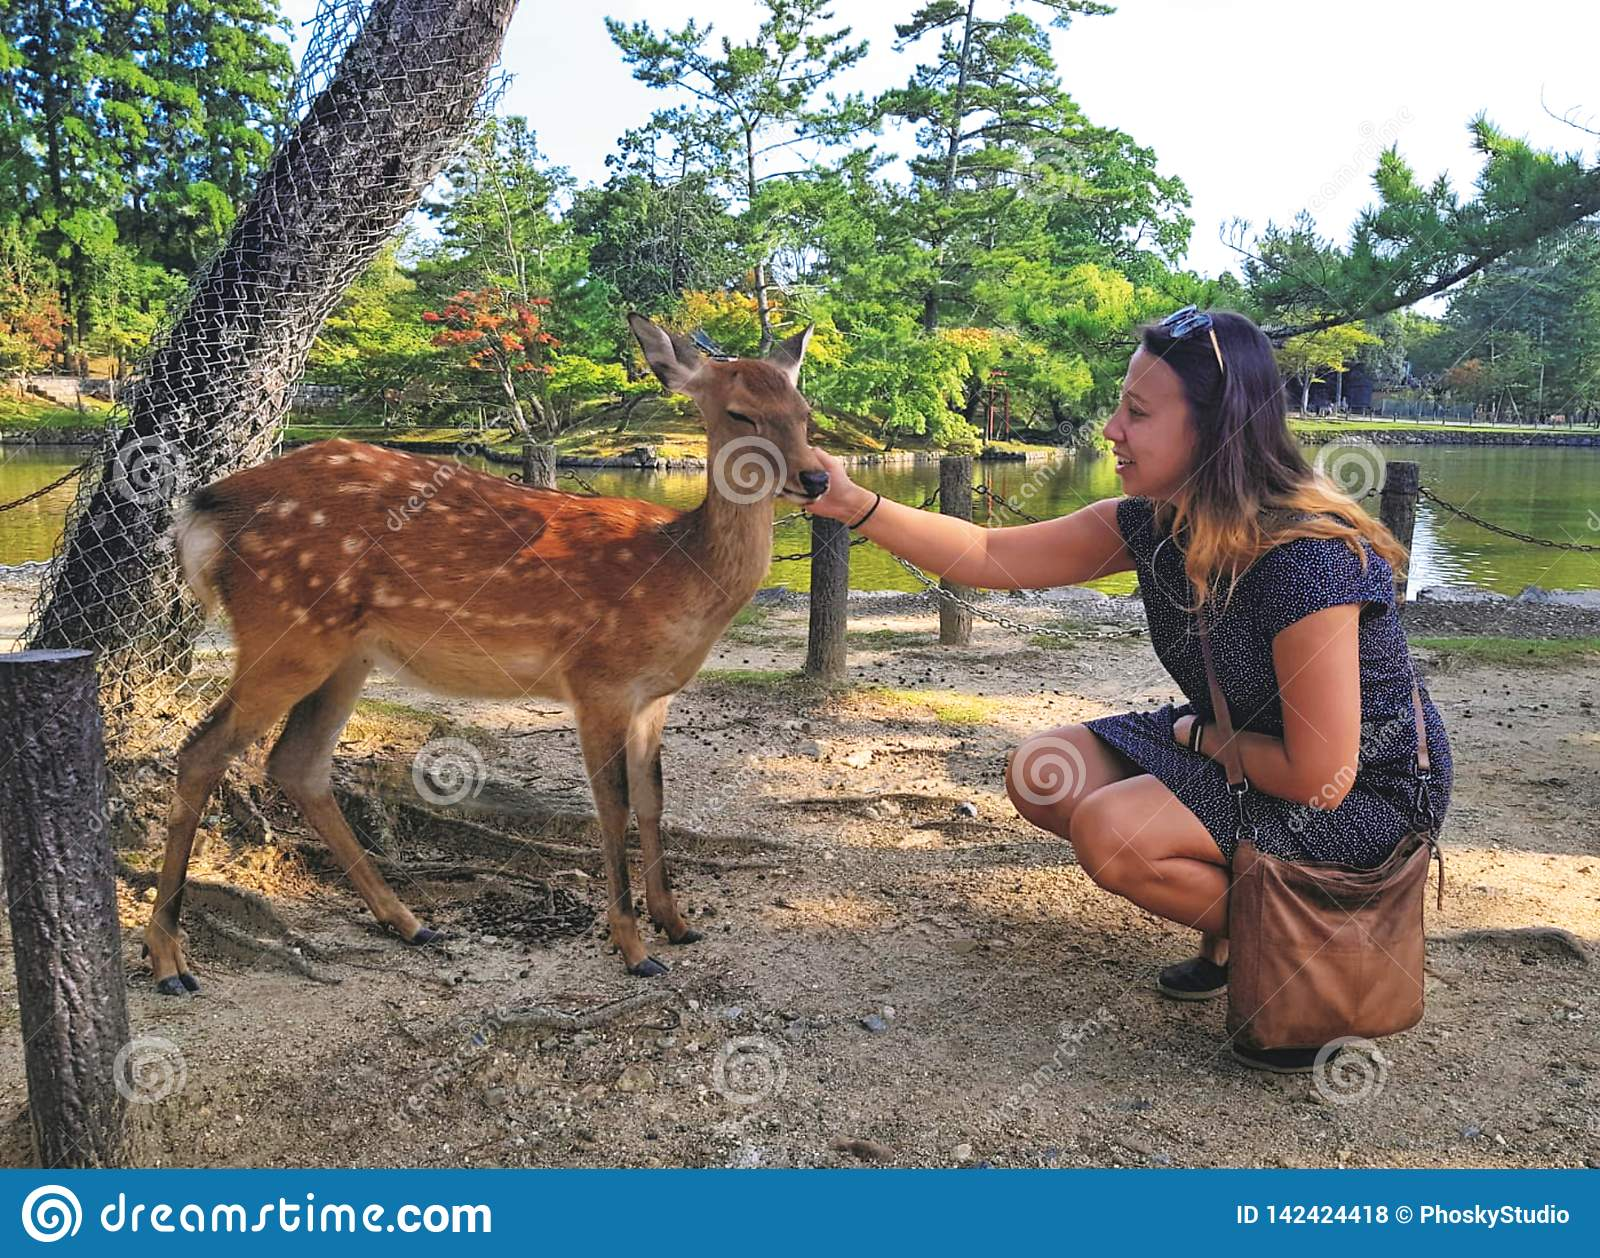 The girl caresses the deer.